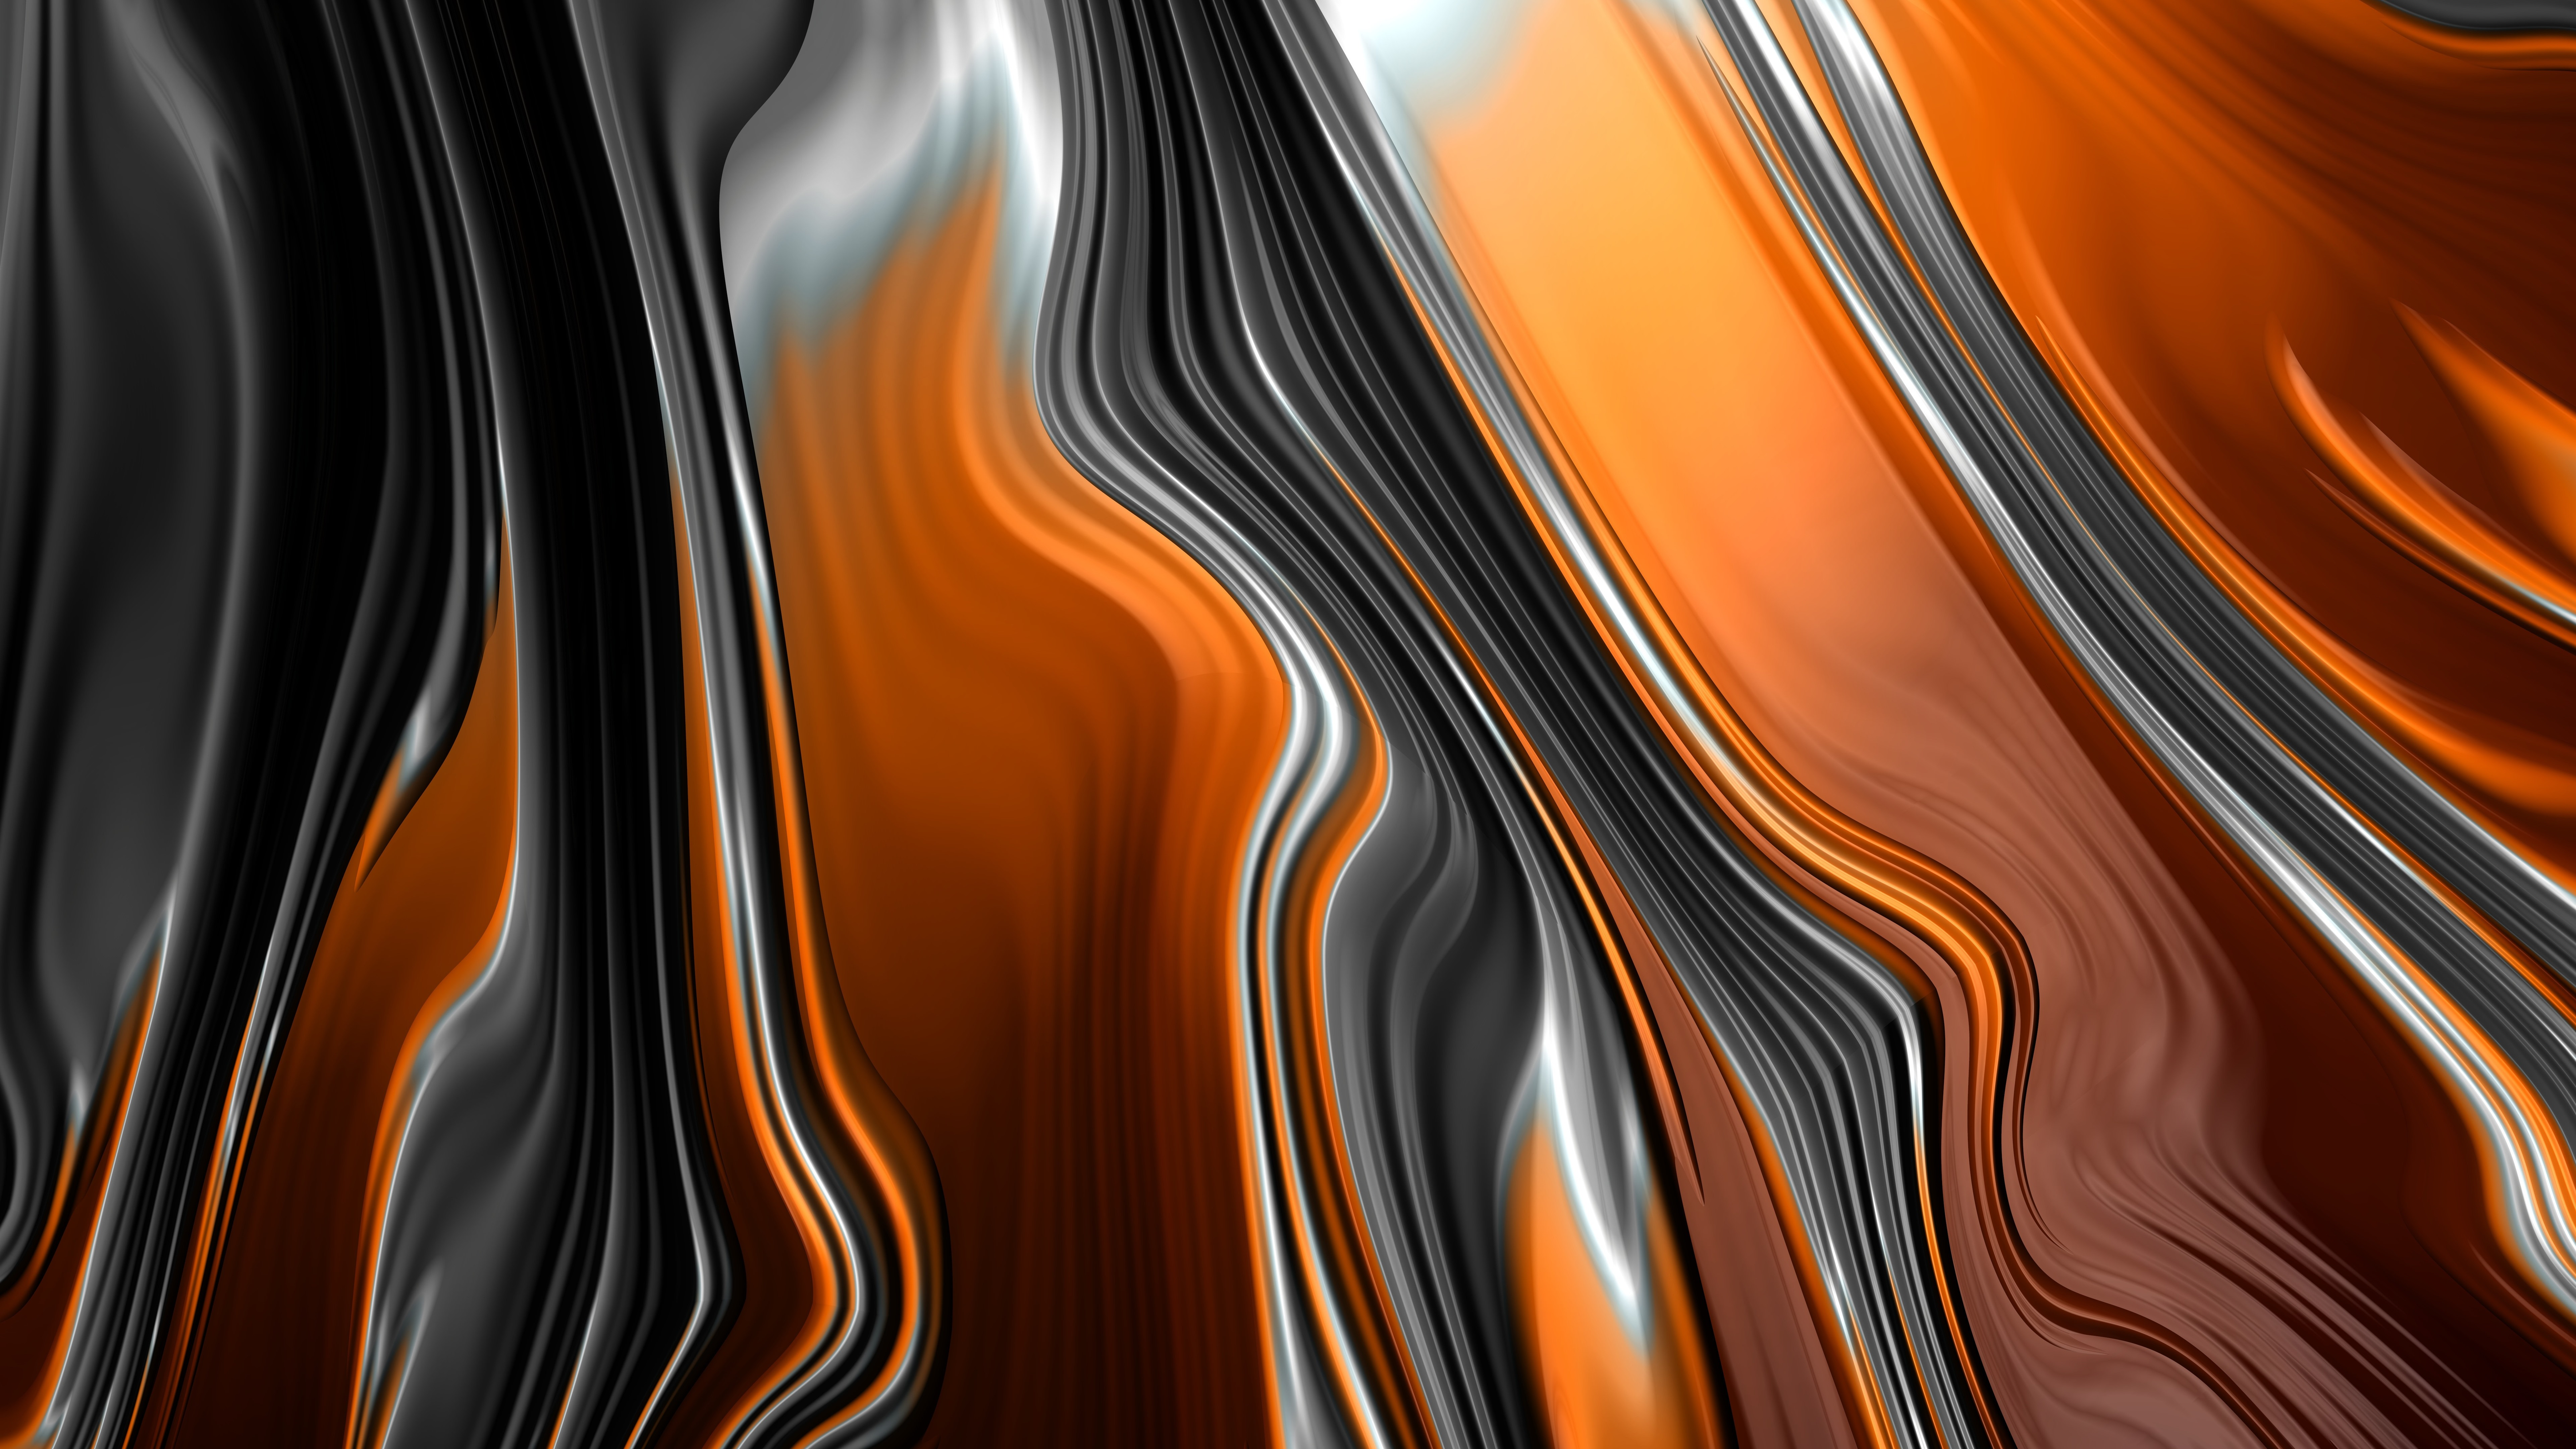 Abstract Fractal Graphics Orange And Black 1242x2688 Iphone